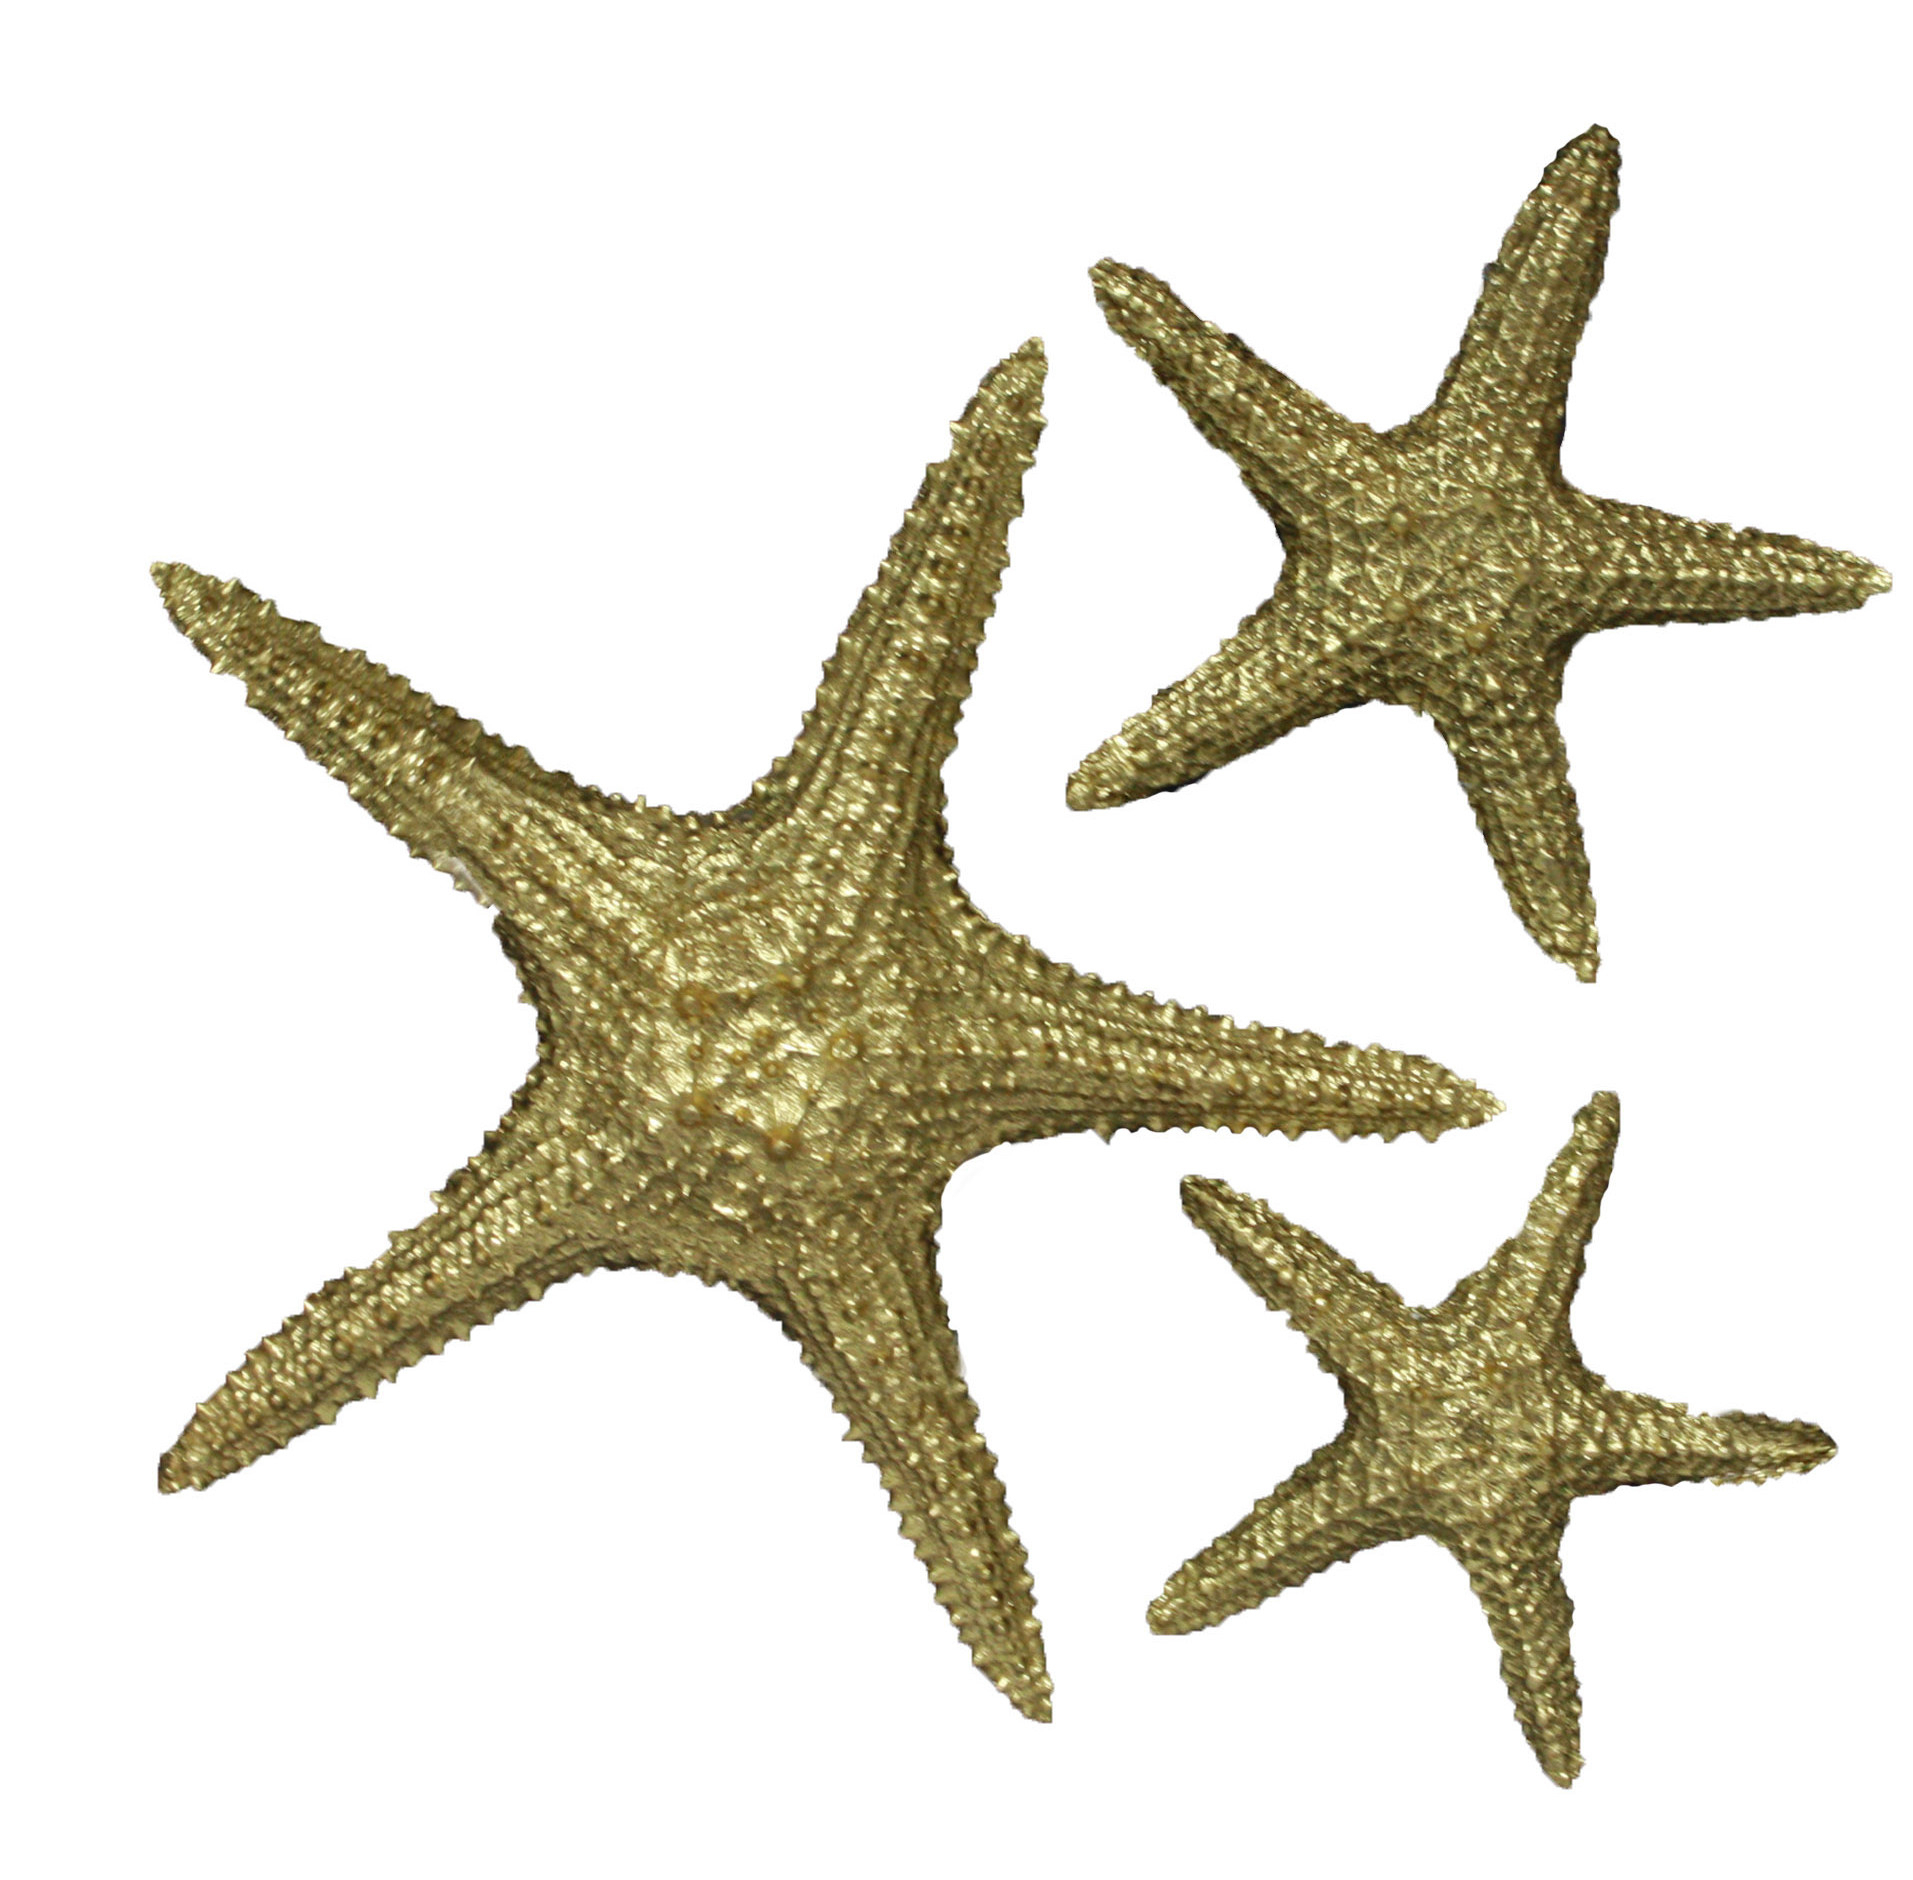 Ebay Within Most Popular Yelton 3 Piece Starfish Wall Decor Sets (View 5 of 20)